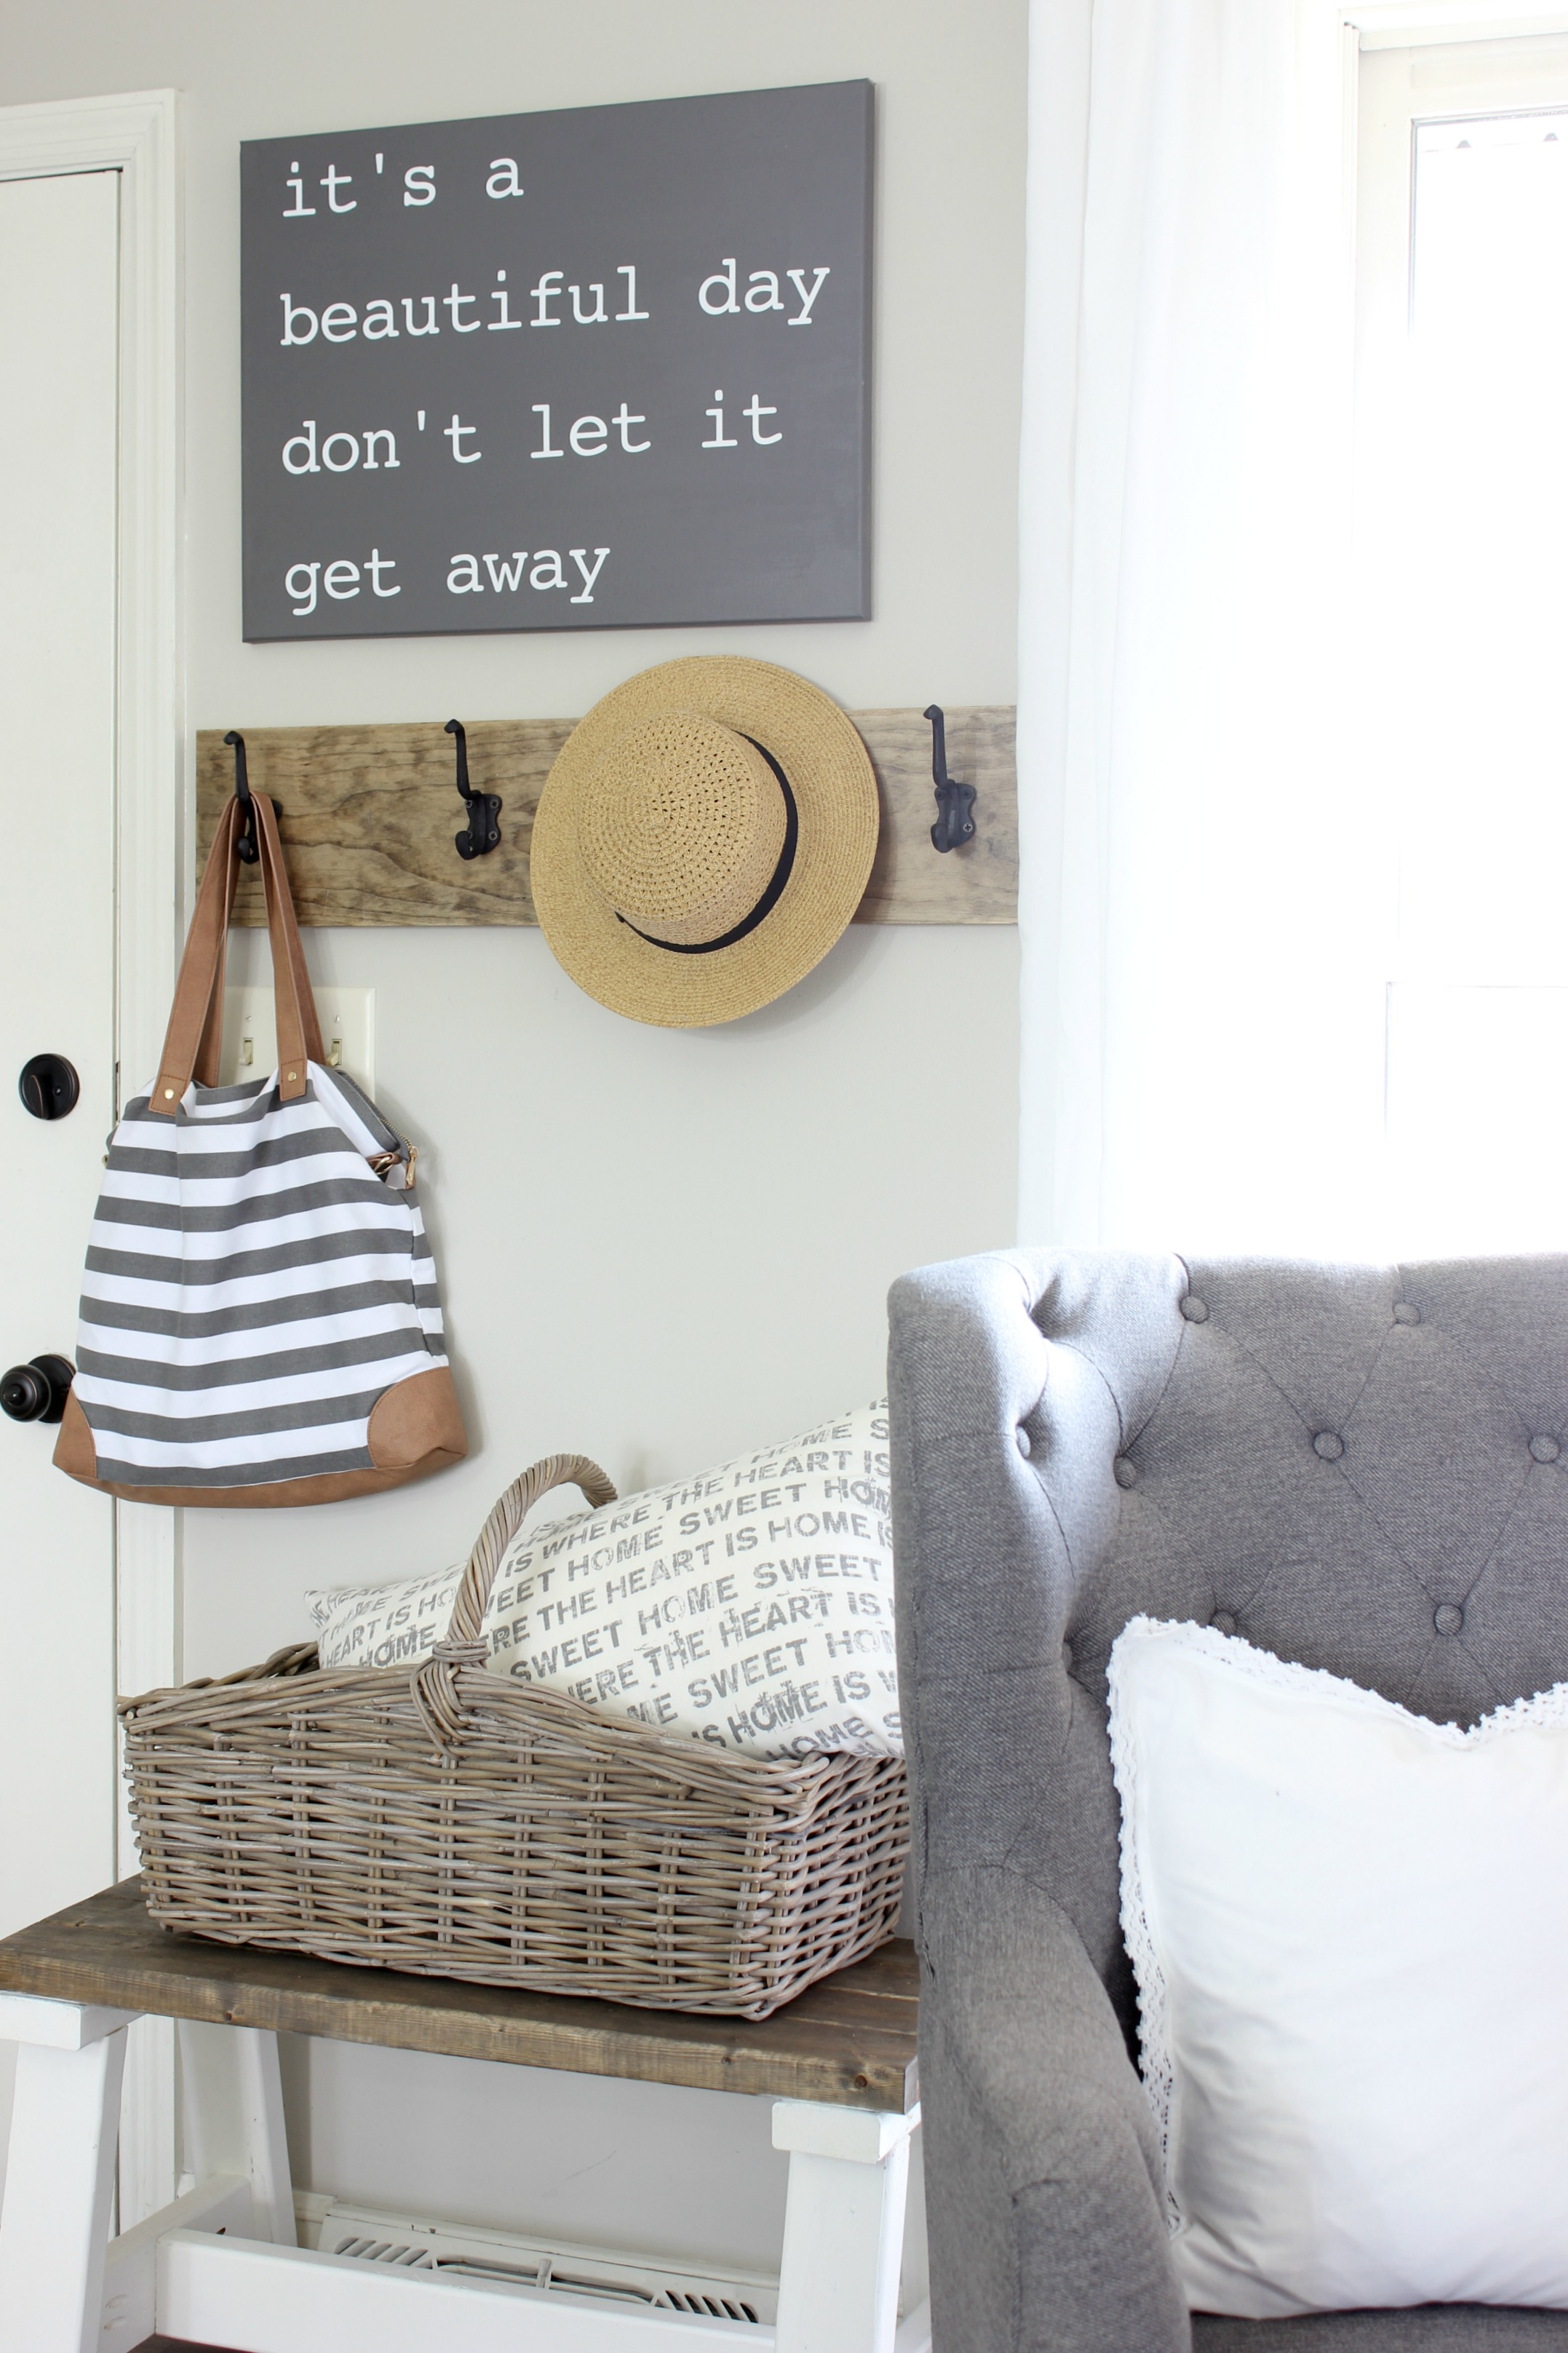 Eye Source Small Entryway Ideas To Make Tiny Space Ctional Page Small Outdoor Entryway Ideas Small Front Entryway Ideas houzz 01 Small Entryway Ideas